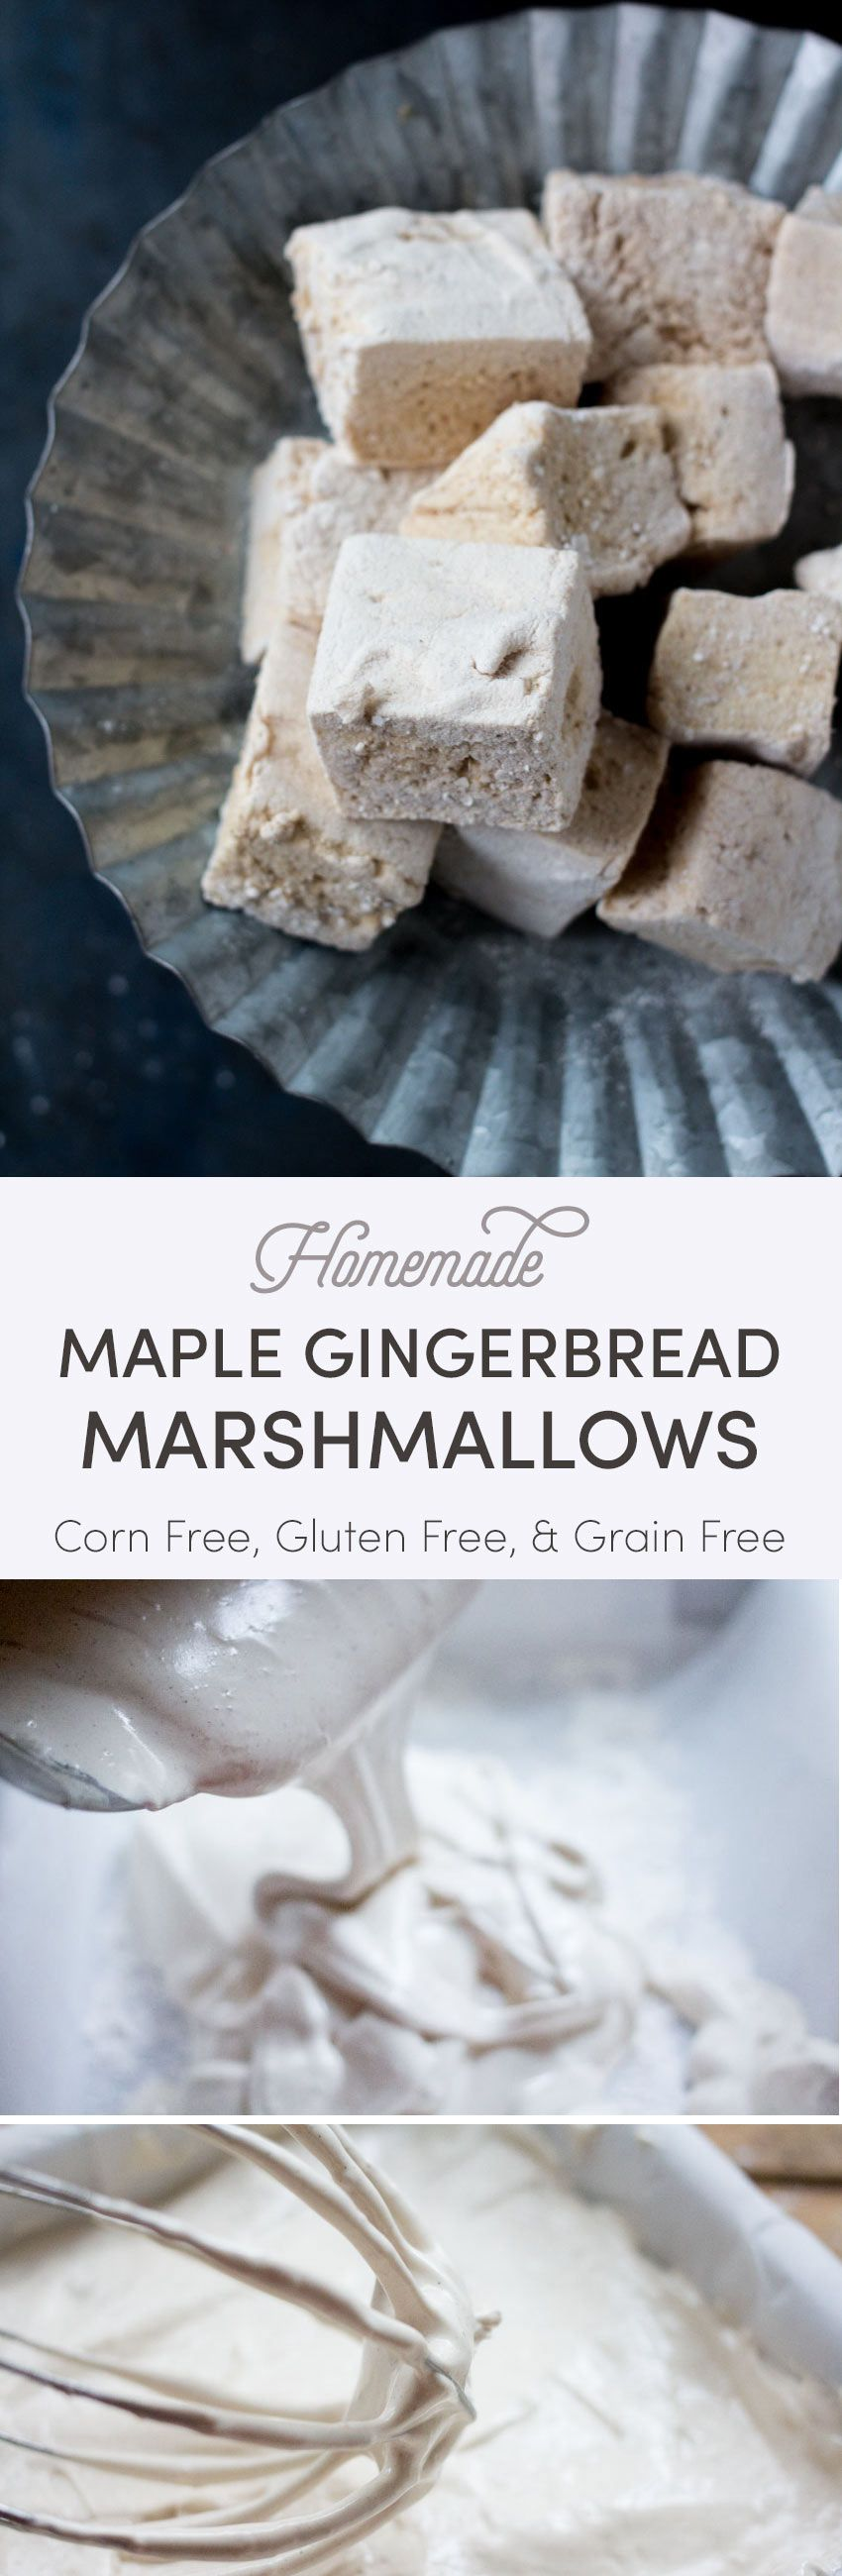 These gingerbread spice marshmallows are sweetened with pure maple syrup instead of corn syrup. Fluffy and pillowy, these homemade marshmallows are a real treat on their own, in a gluten free s'more, or on top of your hot chocolate! #marshmallows